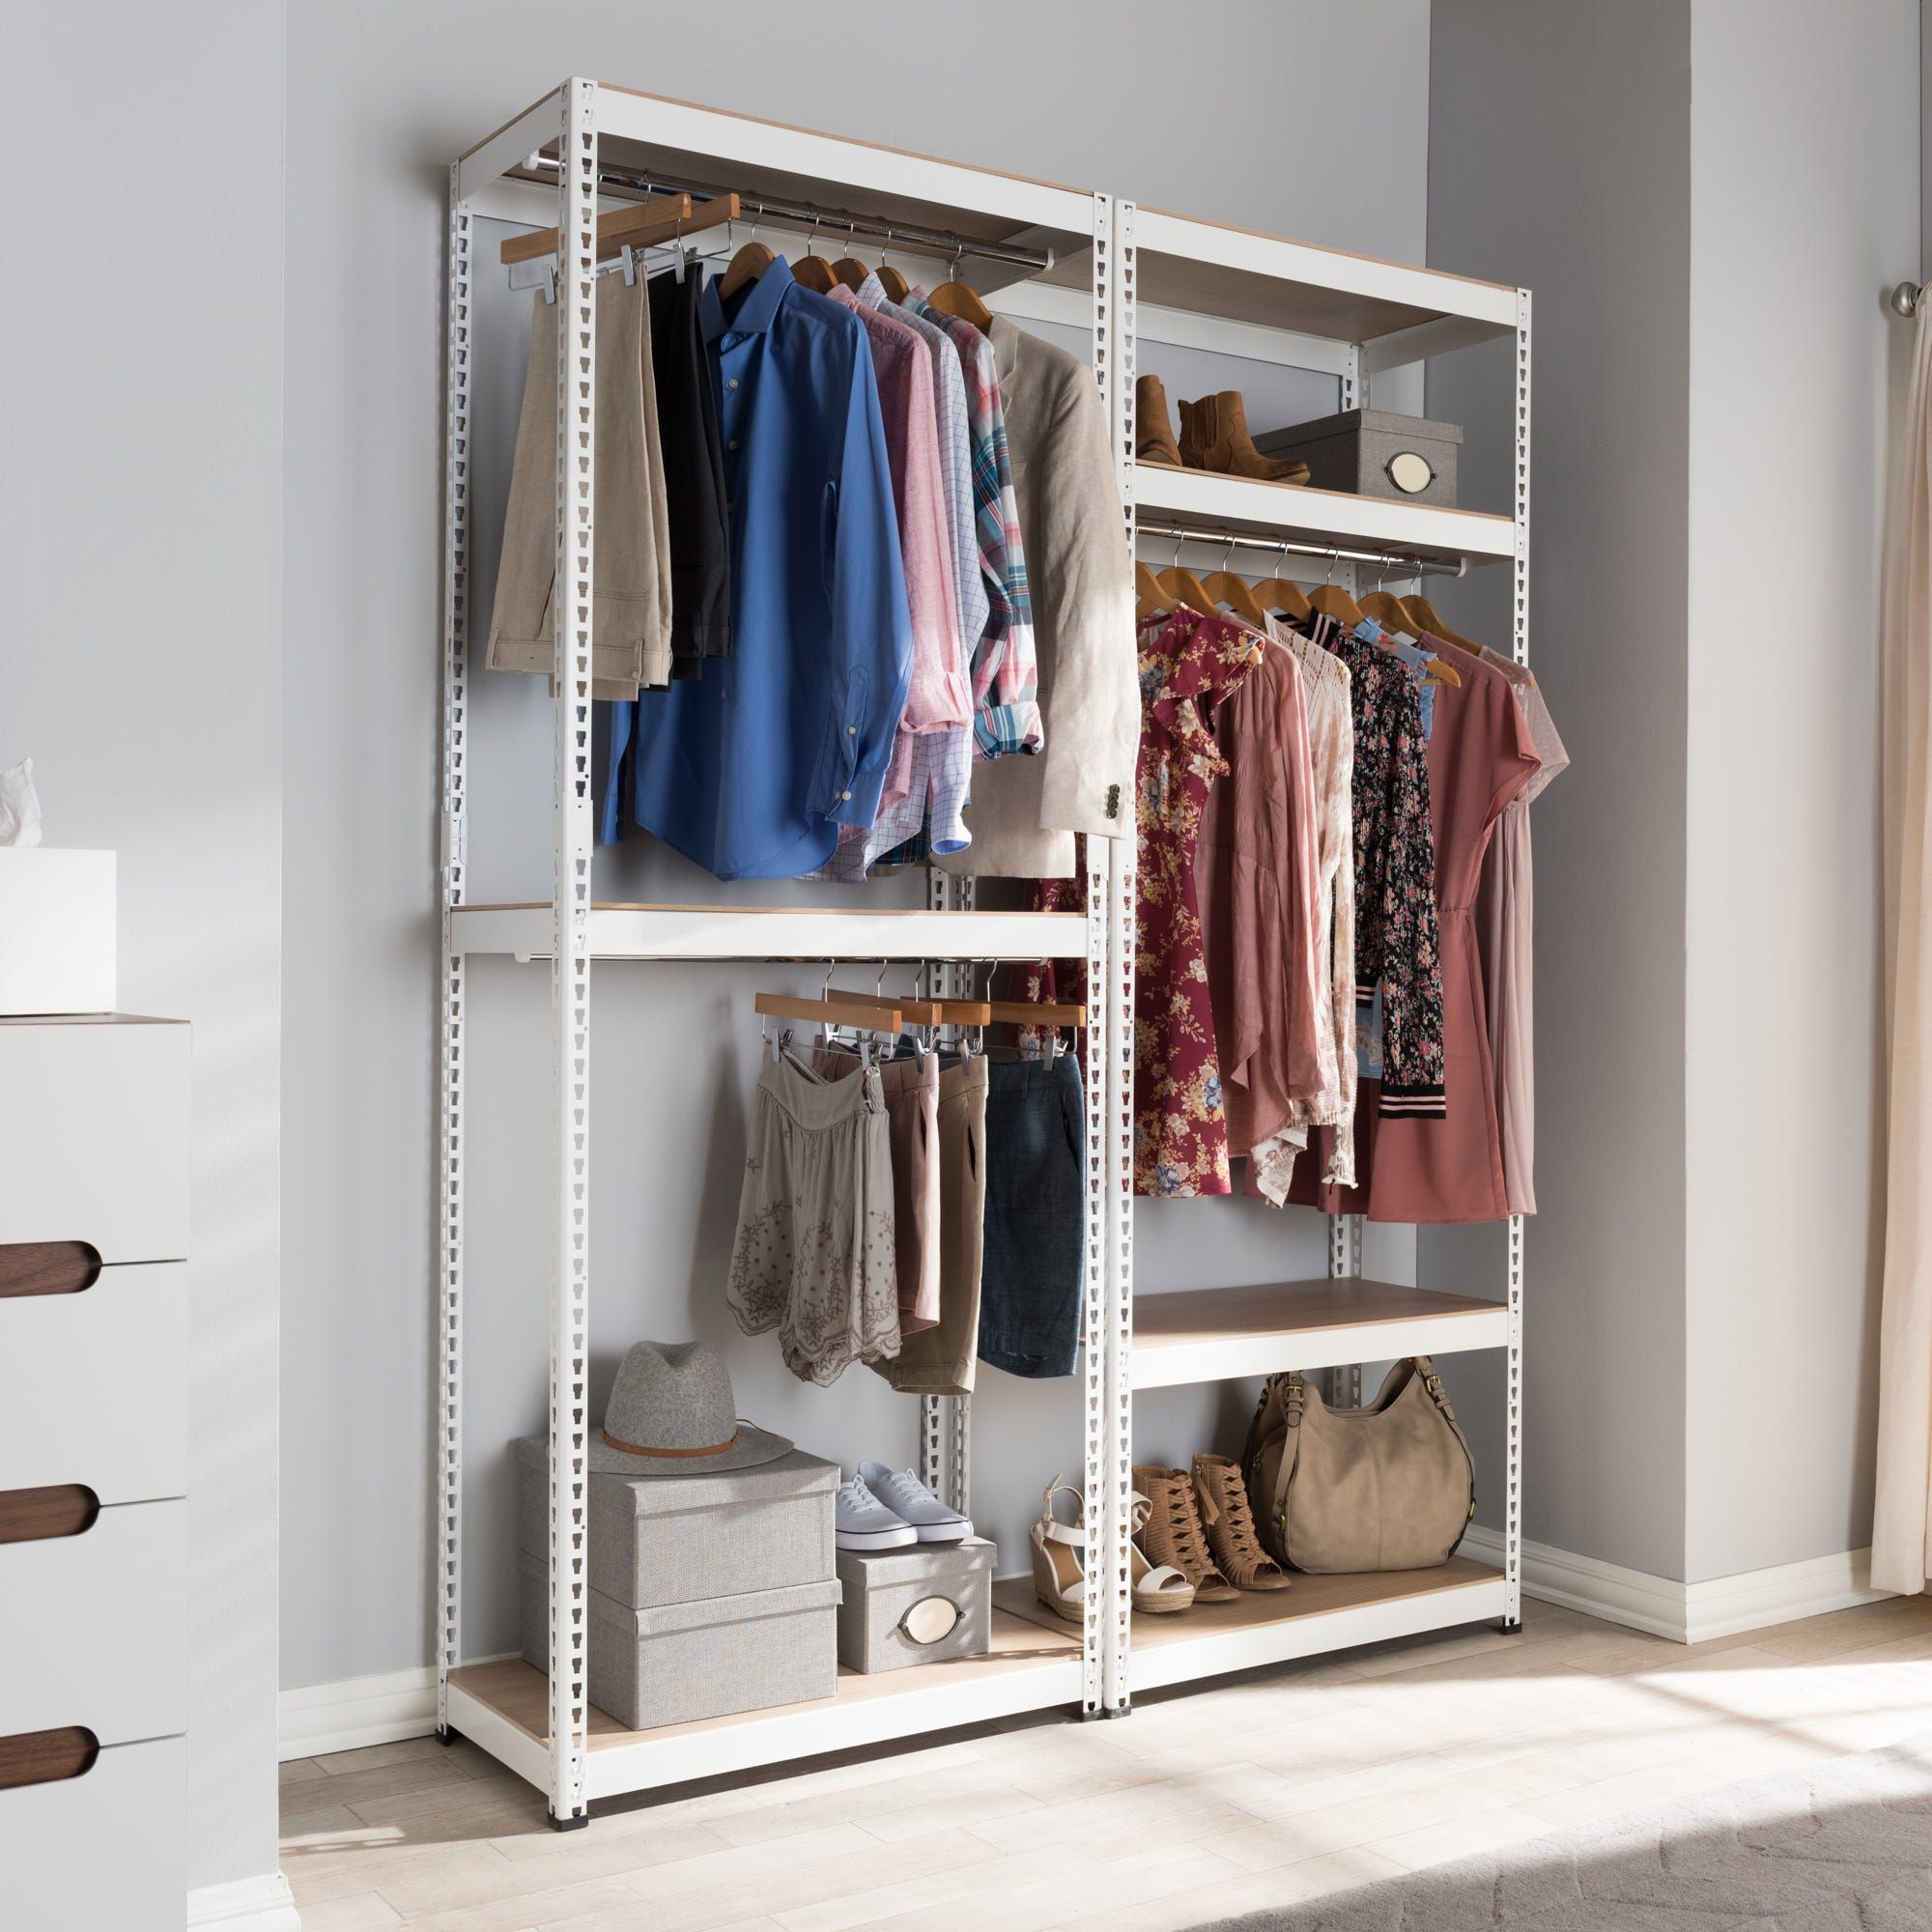 Buy Closet Organizers Systems Online At Overstock Our Best Storage Organization Deals Closet Storage Clothes Storage Without A Closet Closet Shelves